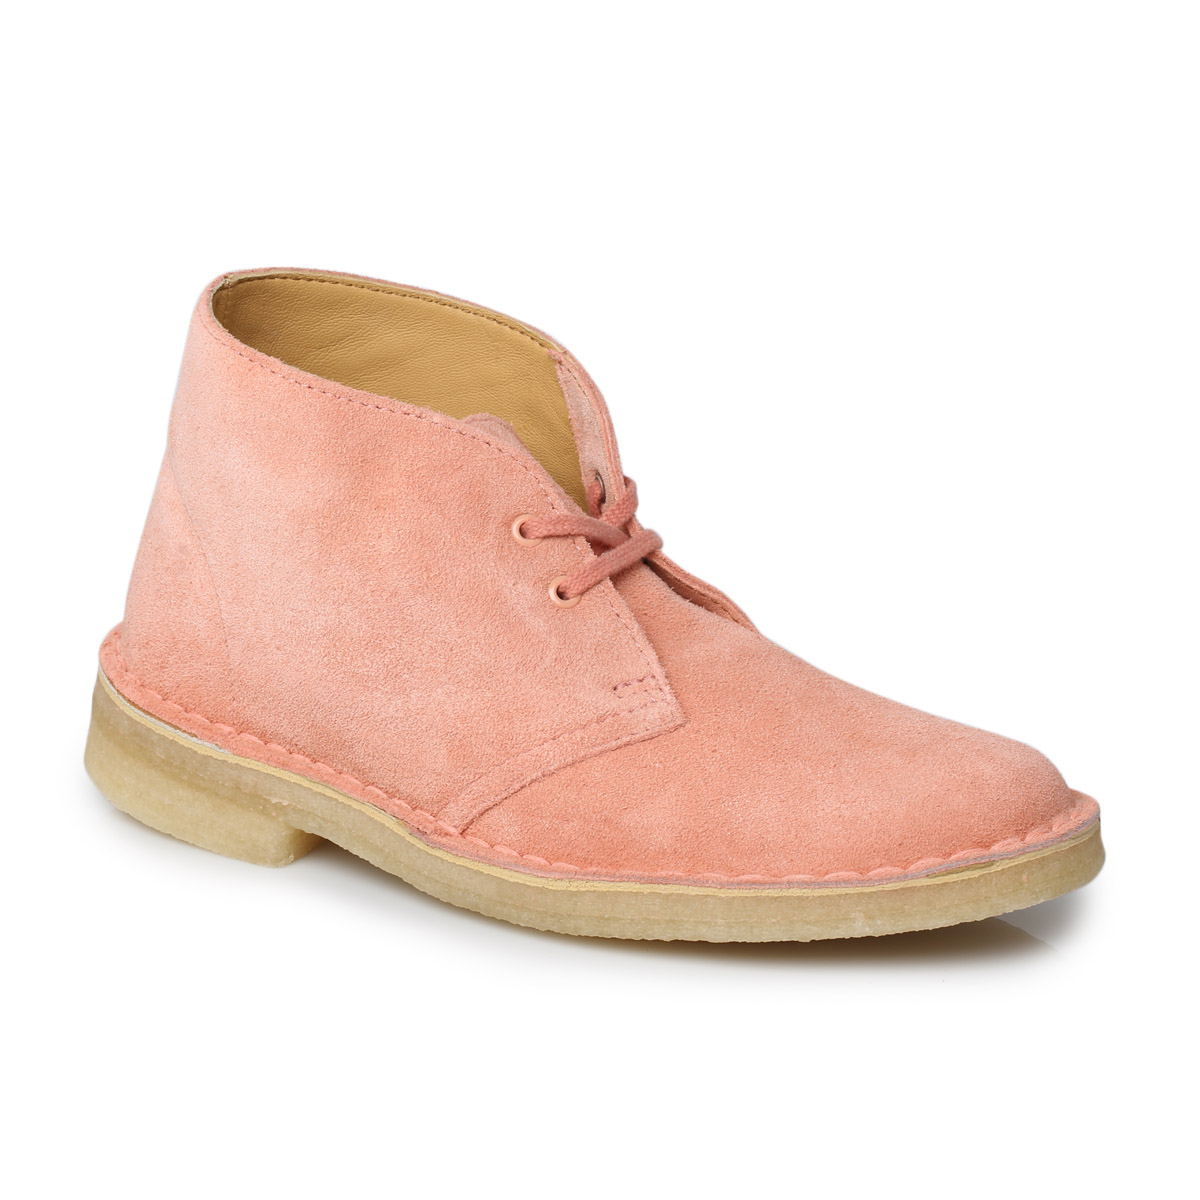 Clarks Pink Shoes Womens